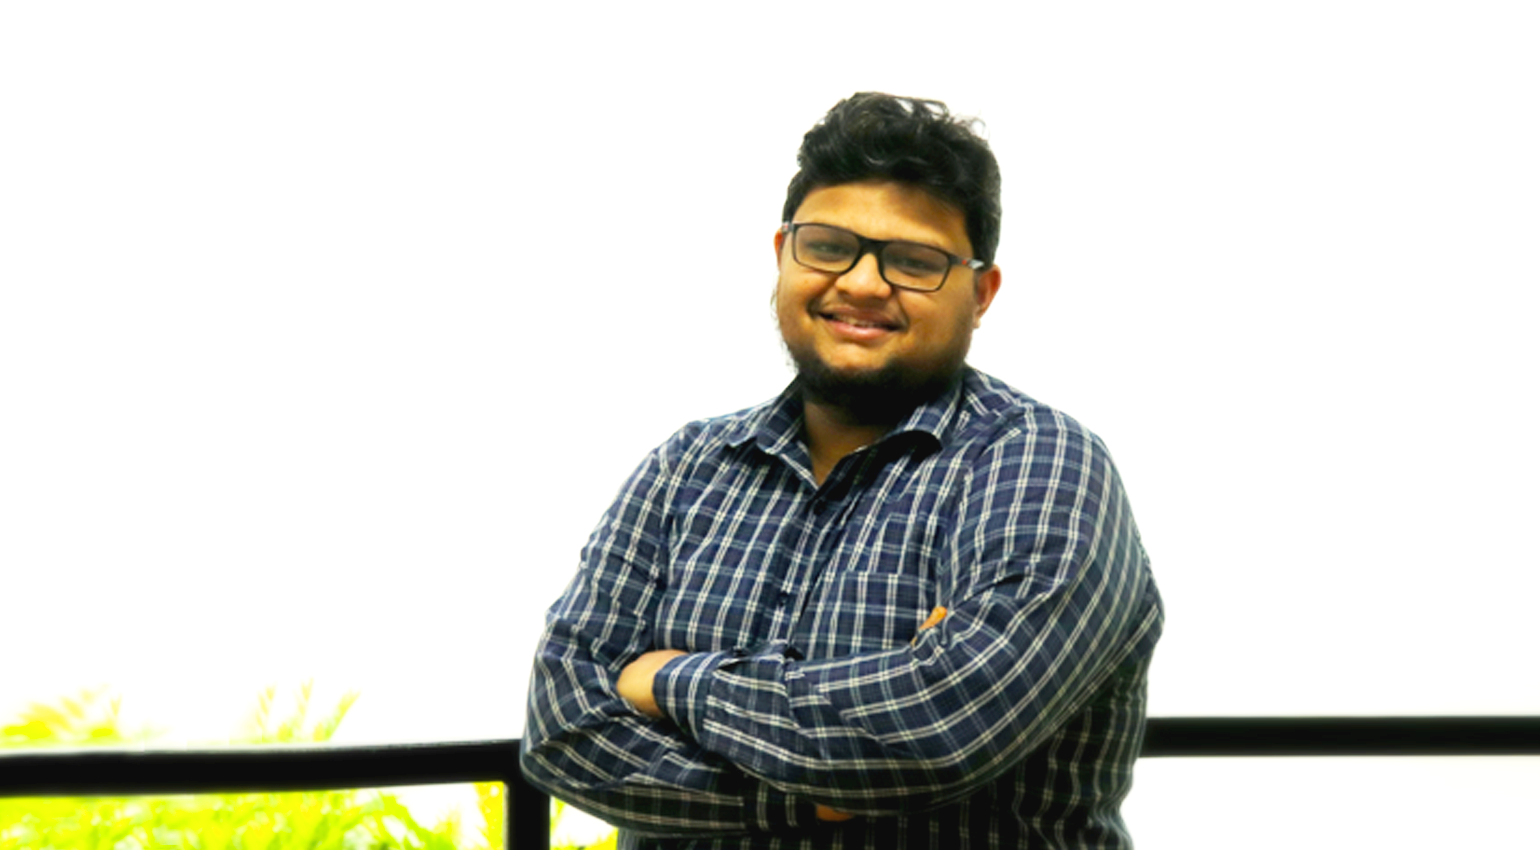 Employee Story - Subho Bose (Sr. Research Analyst)